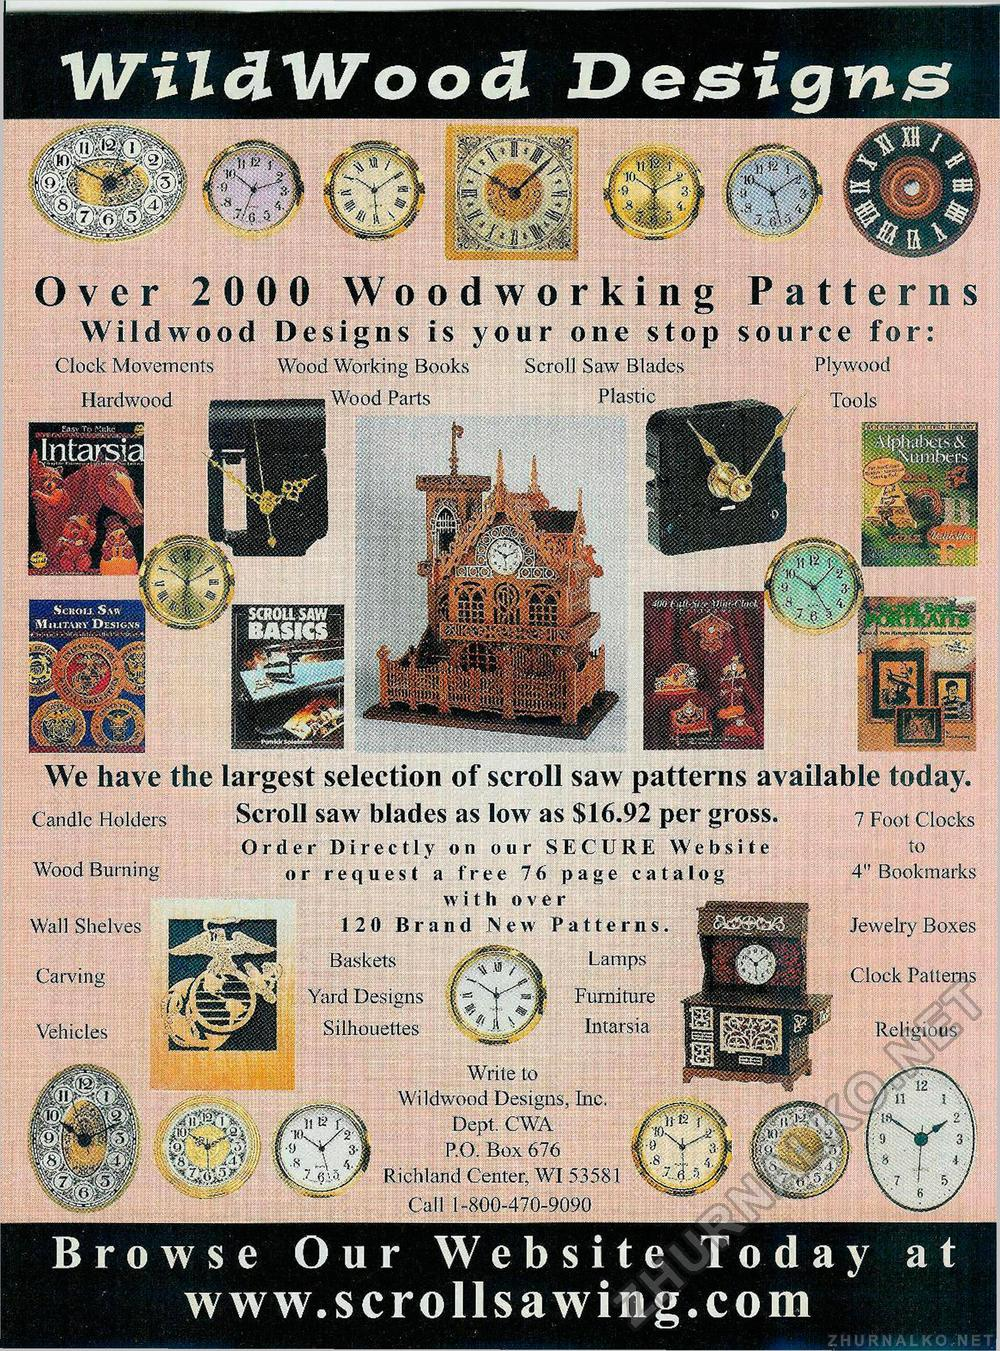 Creative Woodworks & crafts 2002-04, страница 21